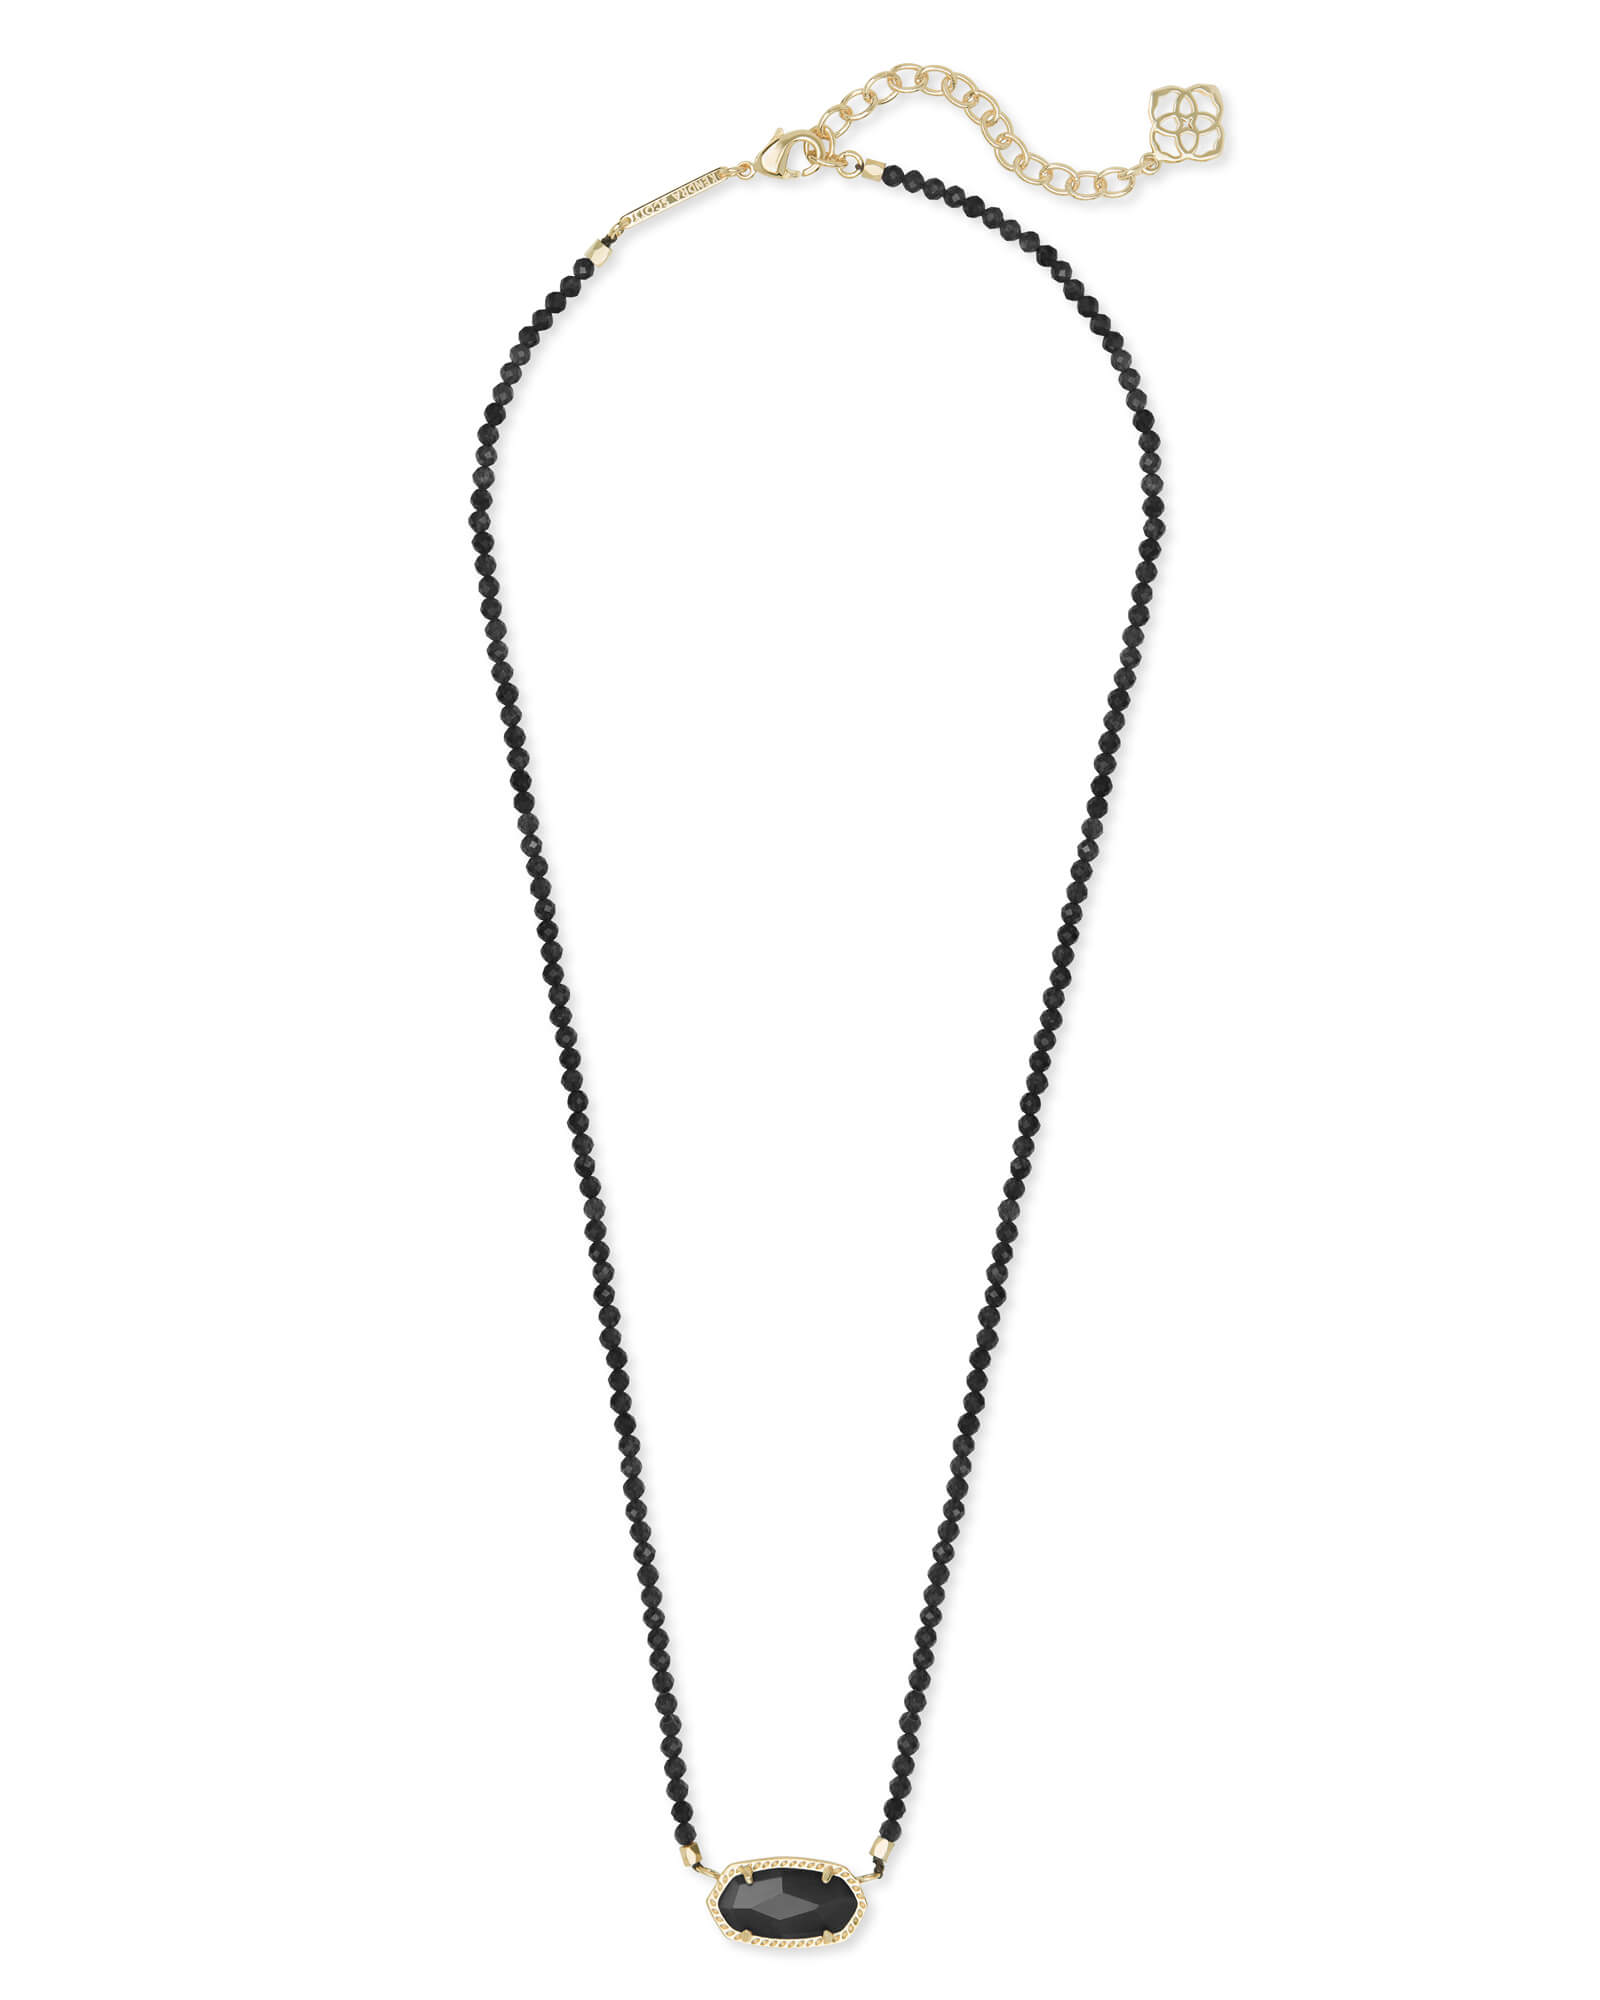 Elisa Gold Beaded Pendant Necklace in Black Mix